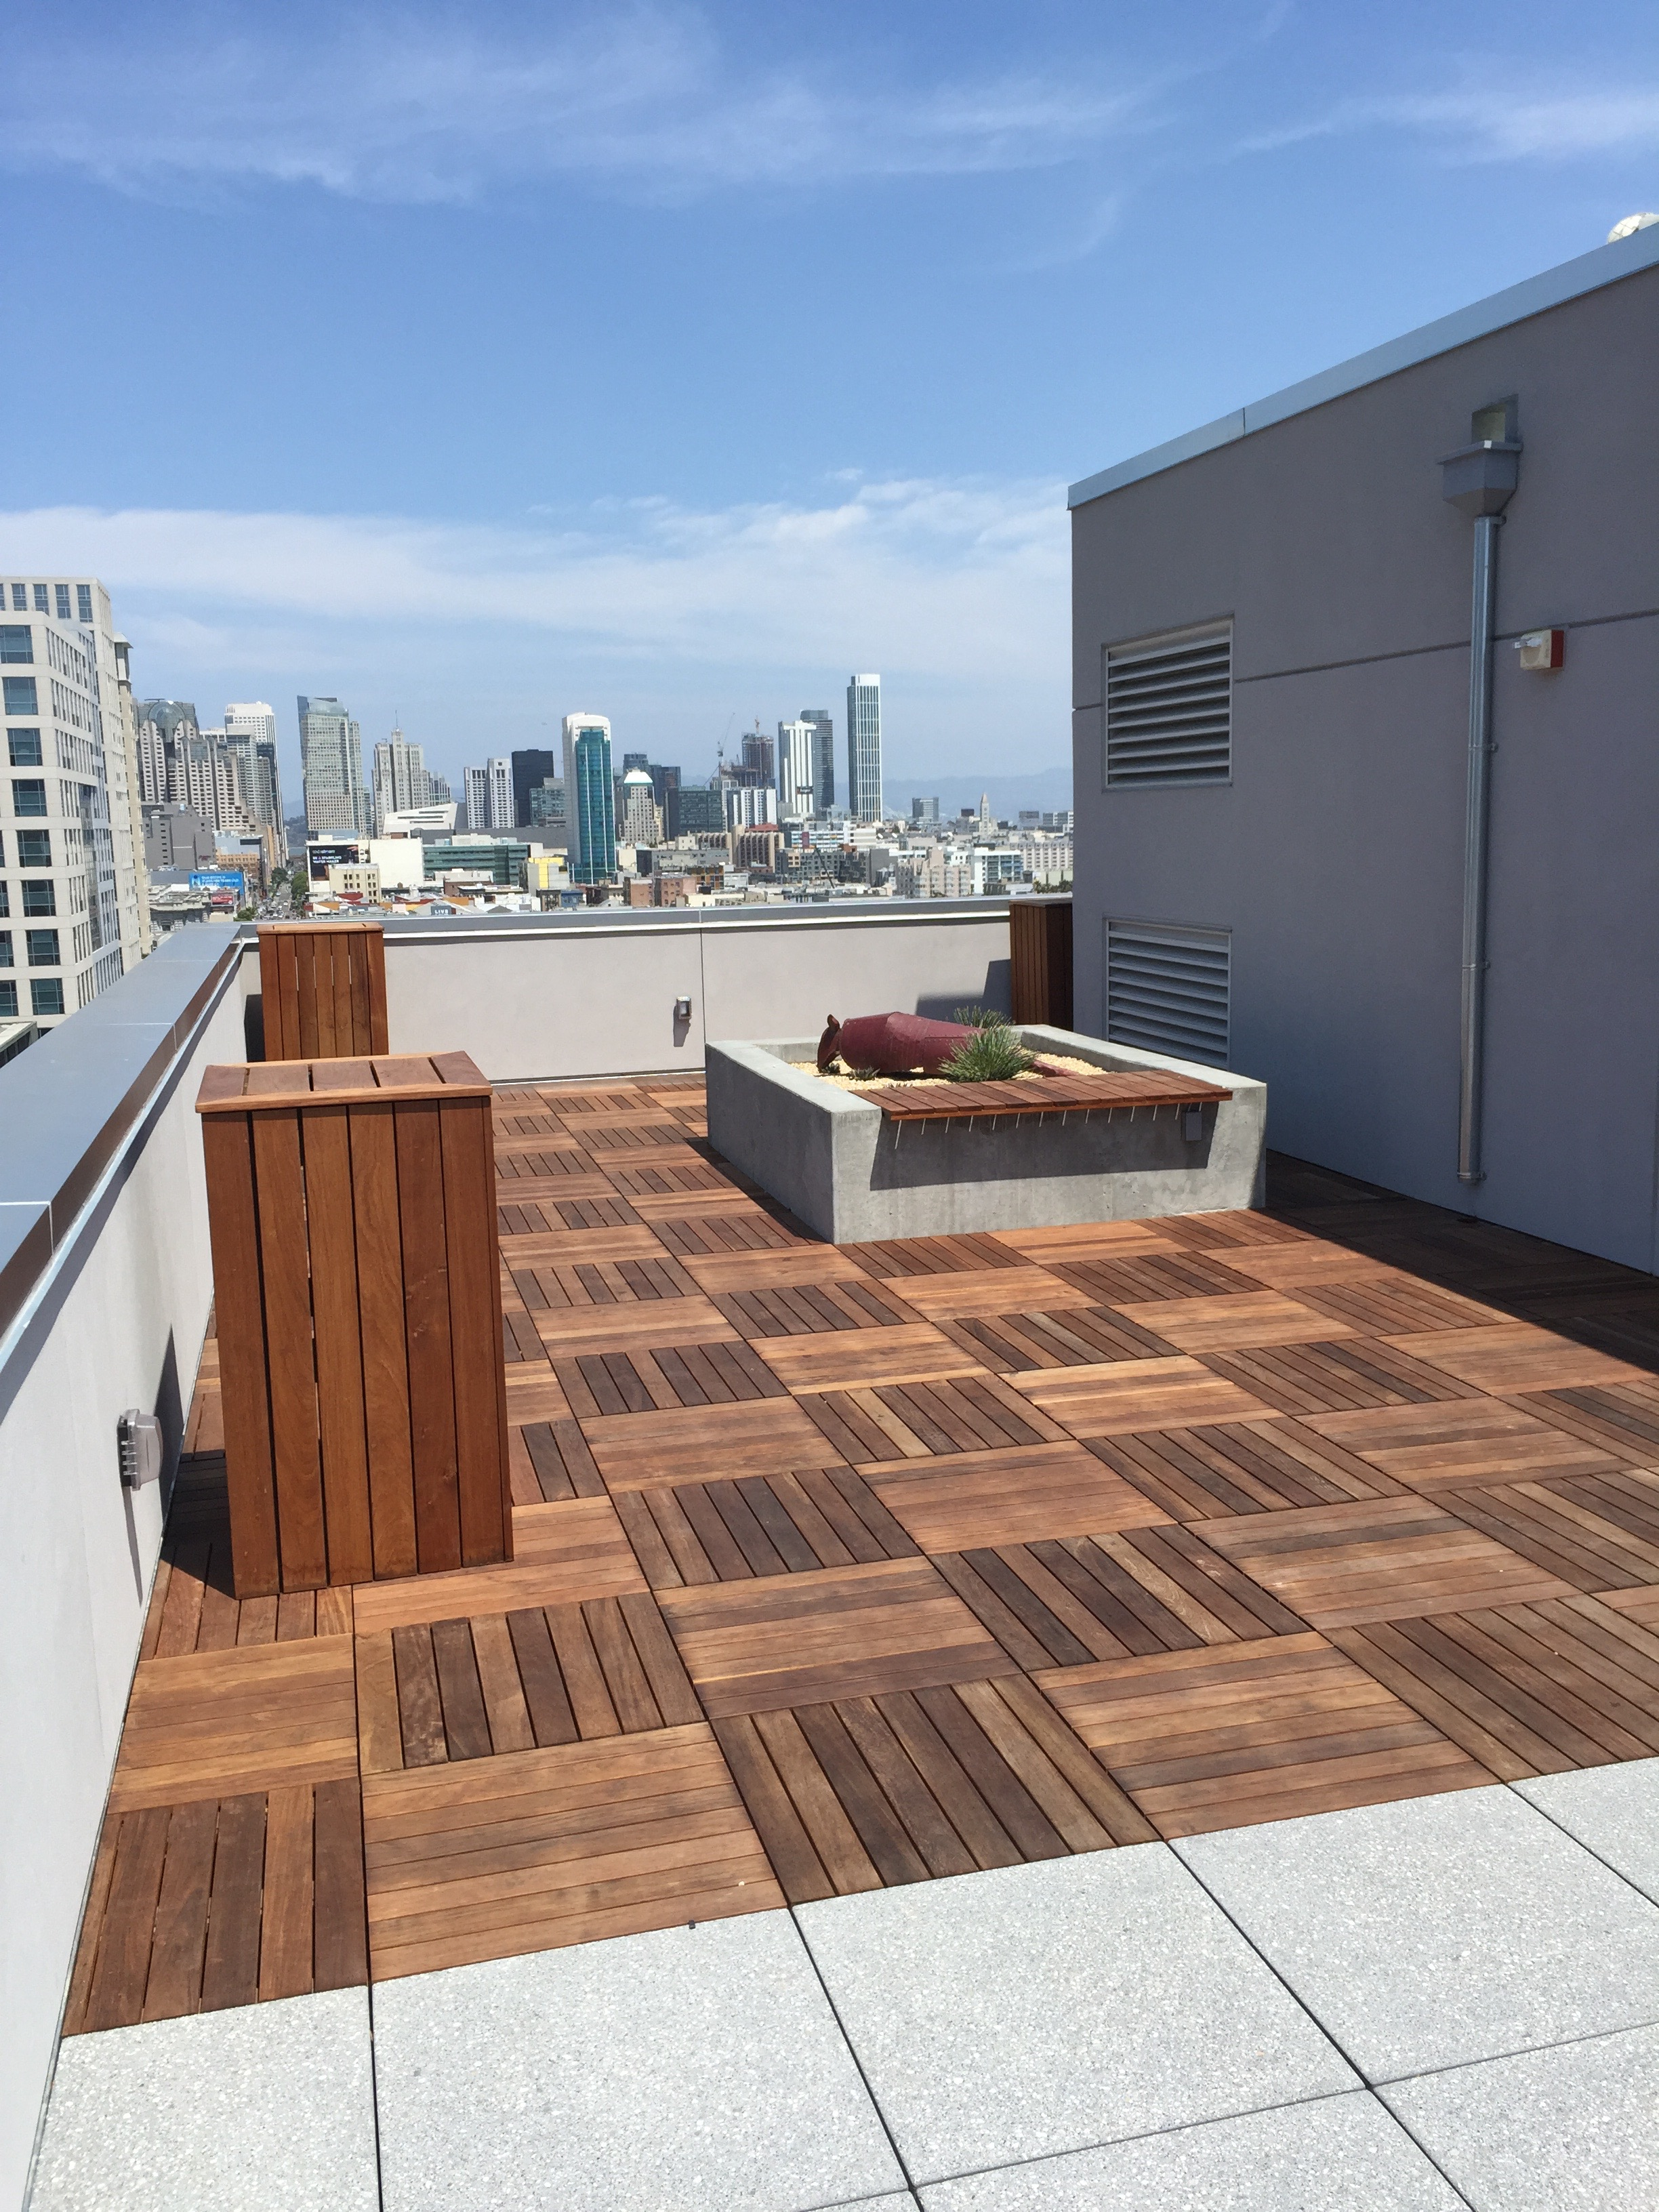 Panoramic Roof Deck Furniture_3_Patrick Kennedy.jpg